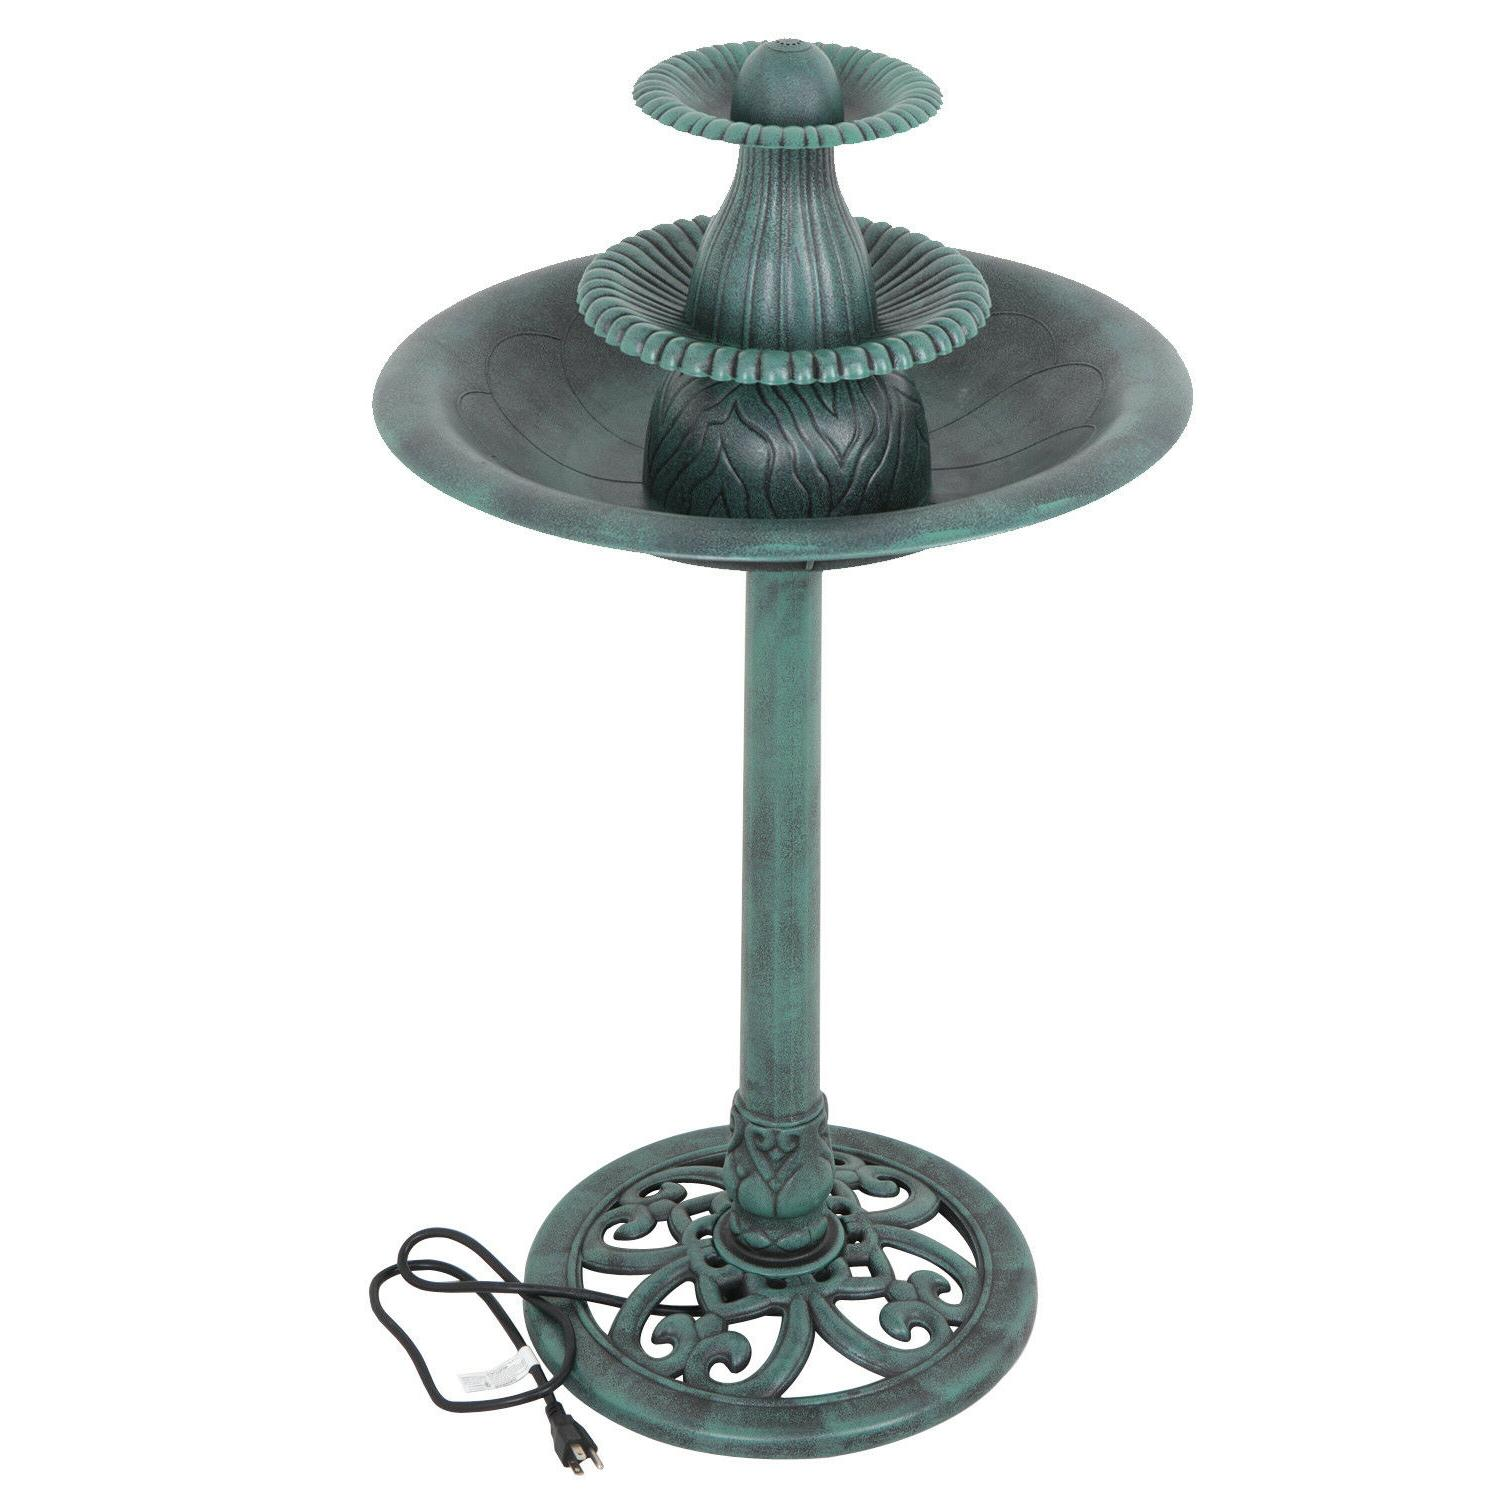 3 Tier Fountain Pump Water Garden